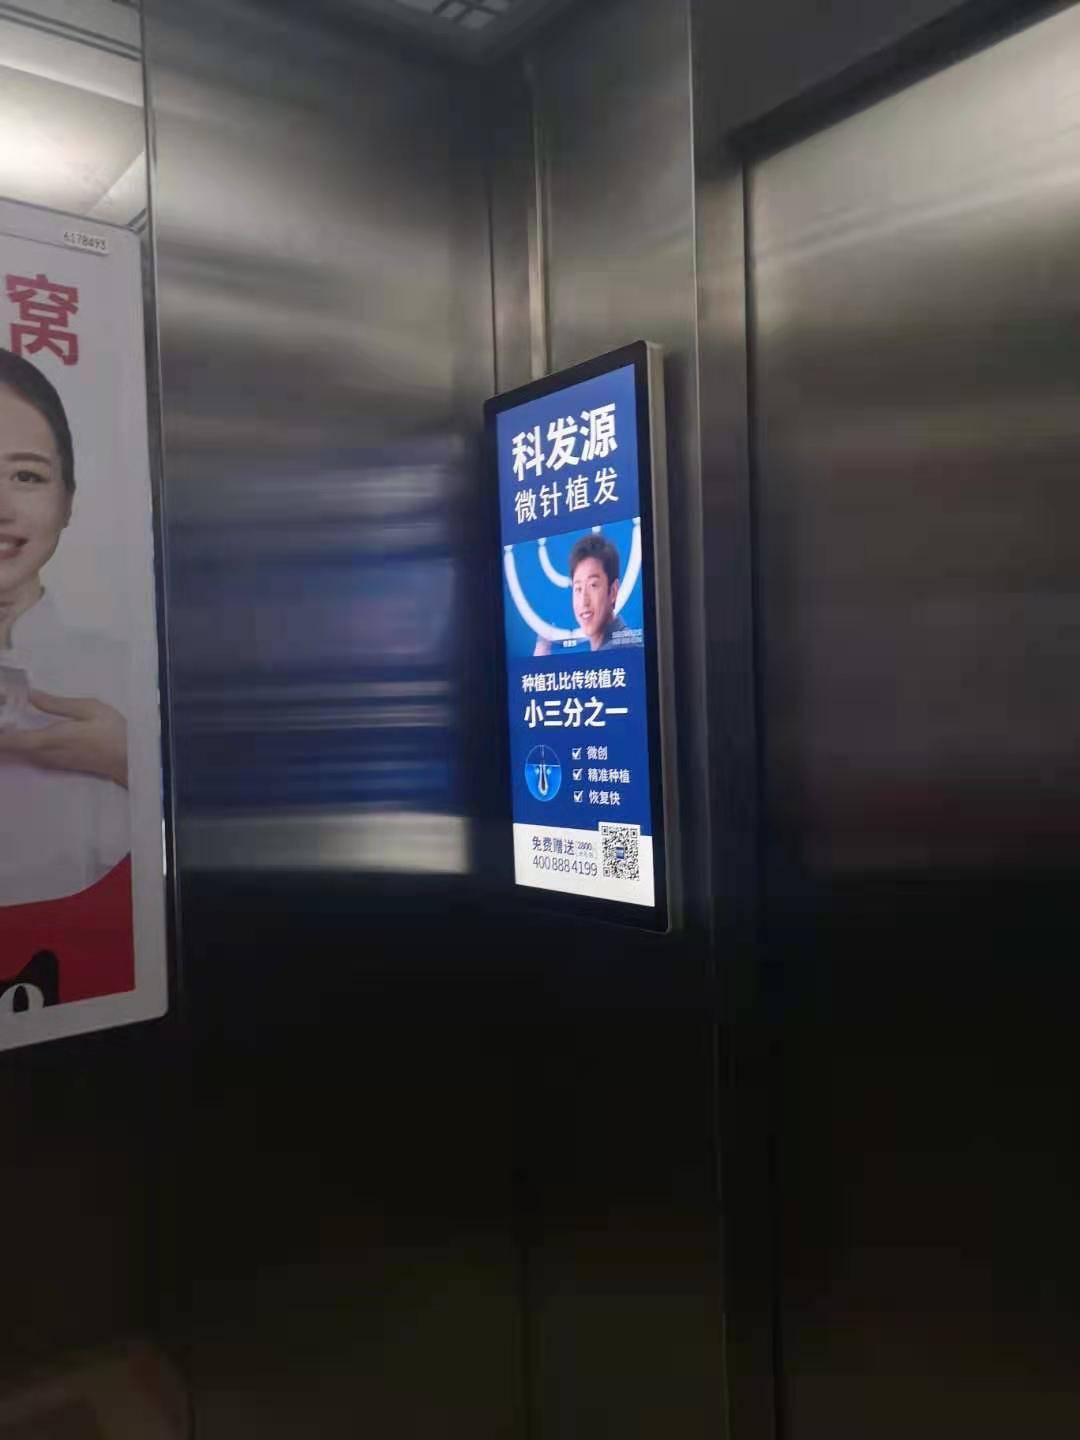 How can elevator ads quickly attract users' attention?